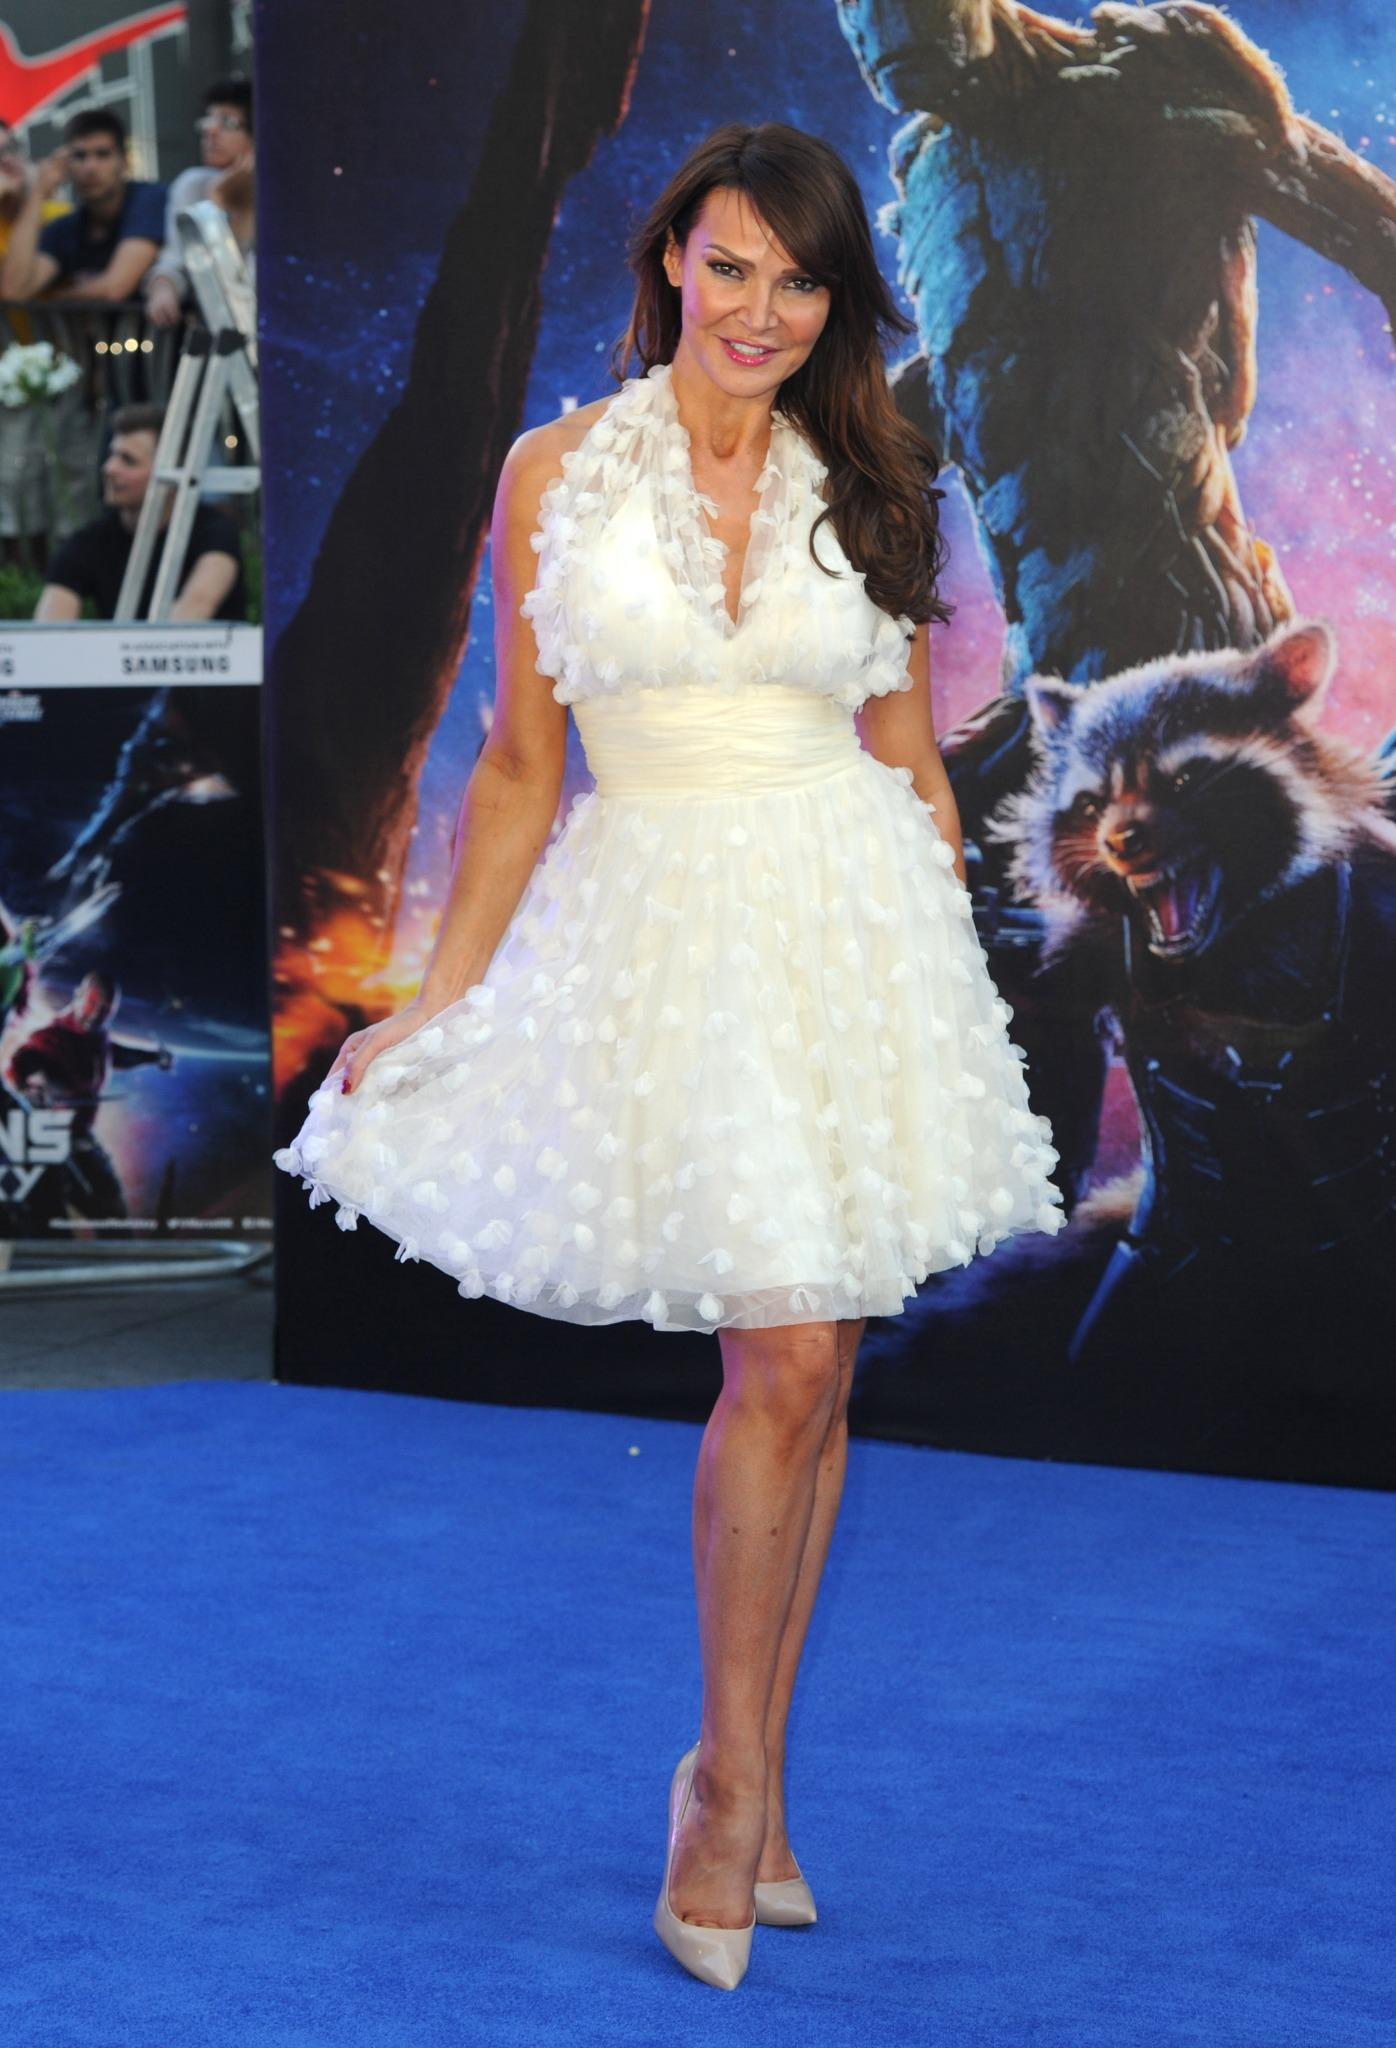 RT @hellsbe: stunning as always @lizziecundy at last night's #GuardiansOfTheGalaxy premiere http://t.co/Y4iocD8kYl